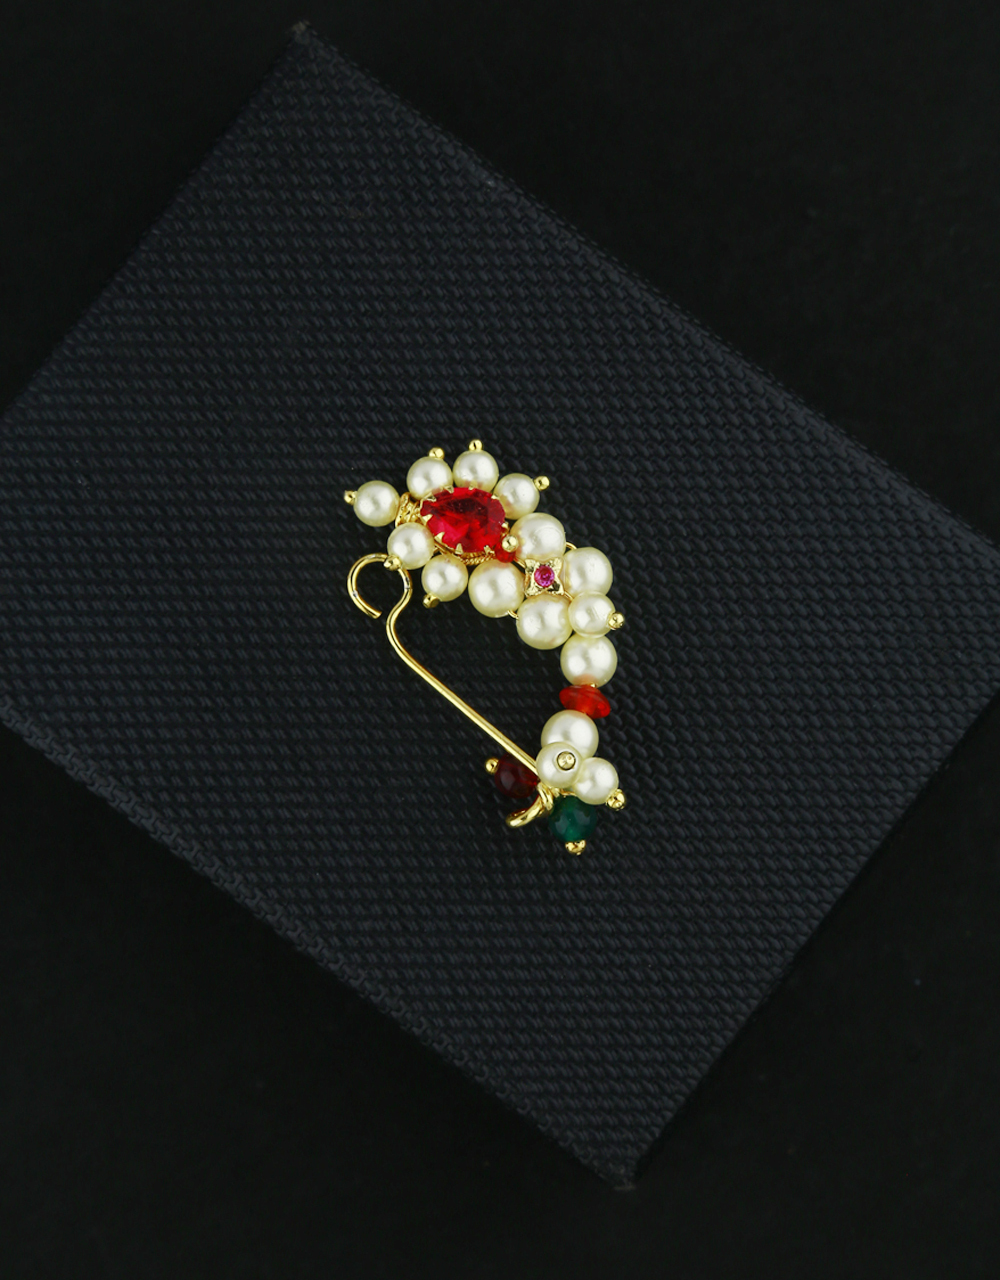 Classy Golden Colour Styled With Moti Nath Maharashtrian Nose Pin Pressing Nath Clip-On Nose Ring  Traditional Jewellery For Women {Clip-On Nath}